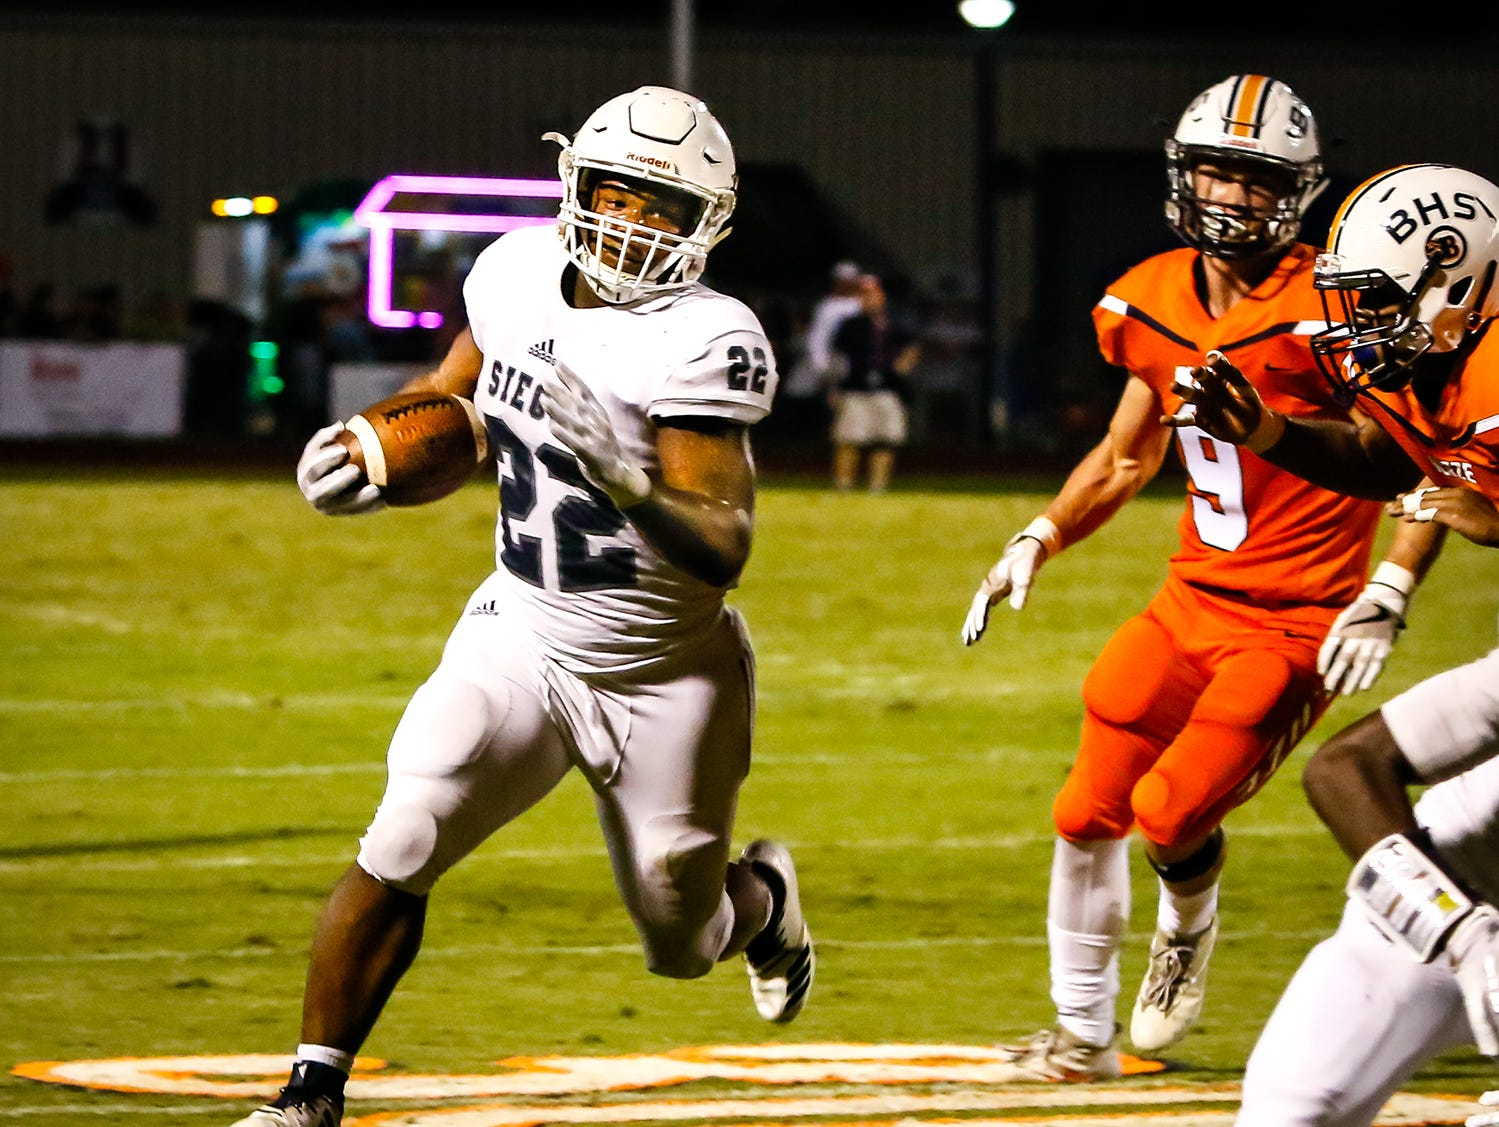 Siegel's Pat Boykins towards the sidelines for a big yardage play for Siegel.